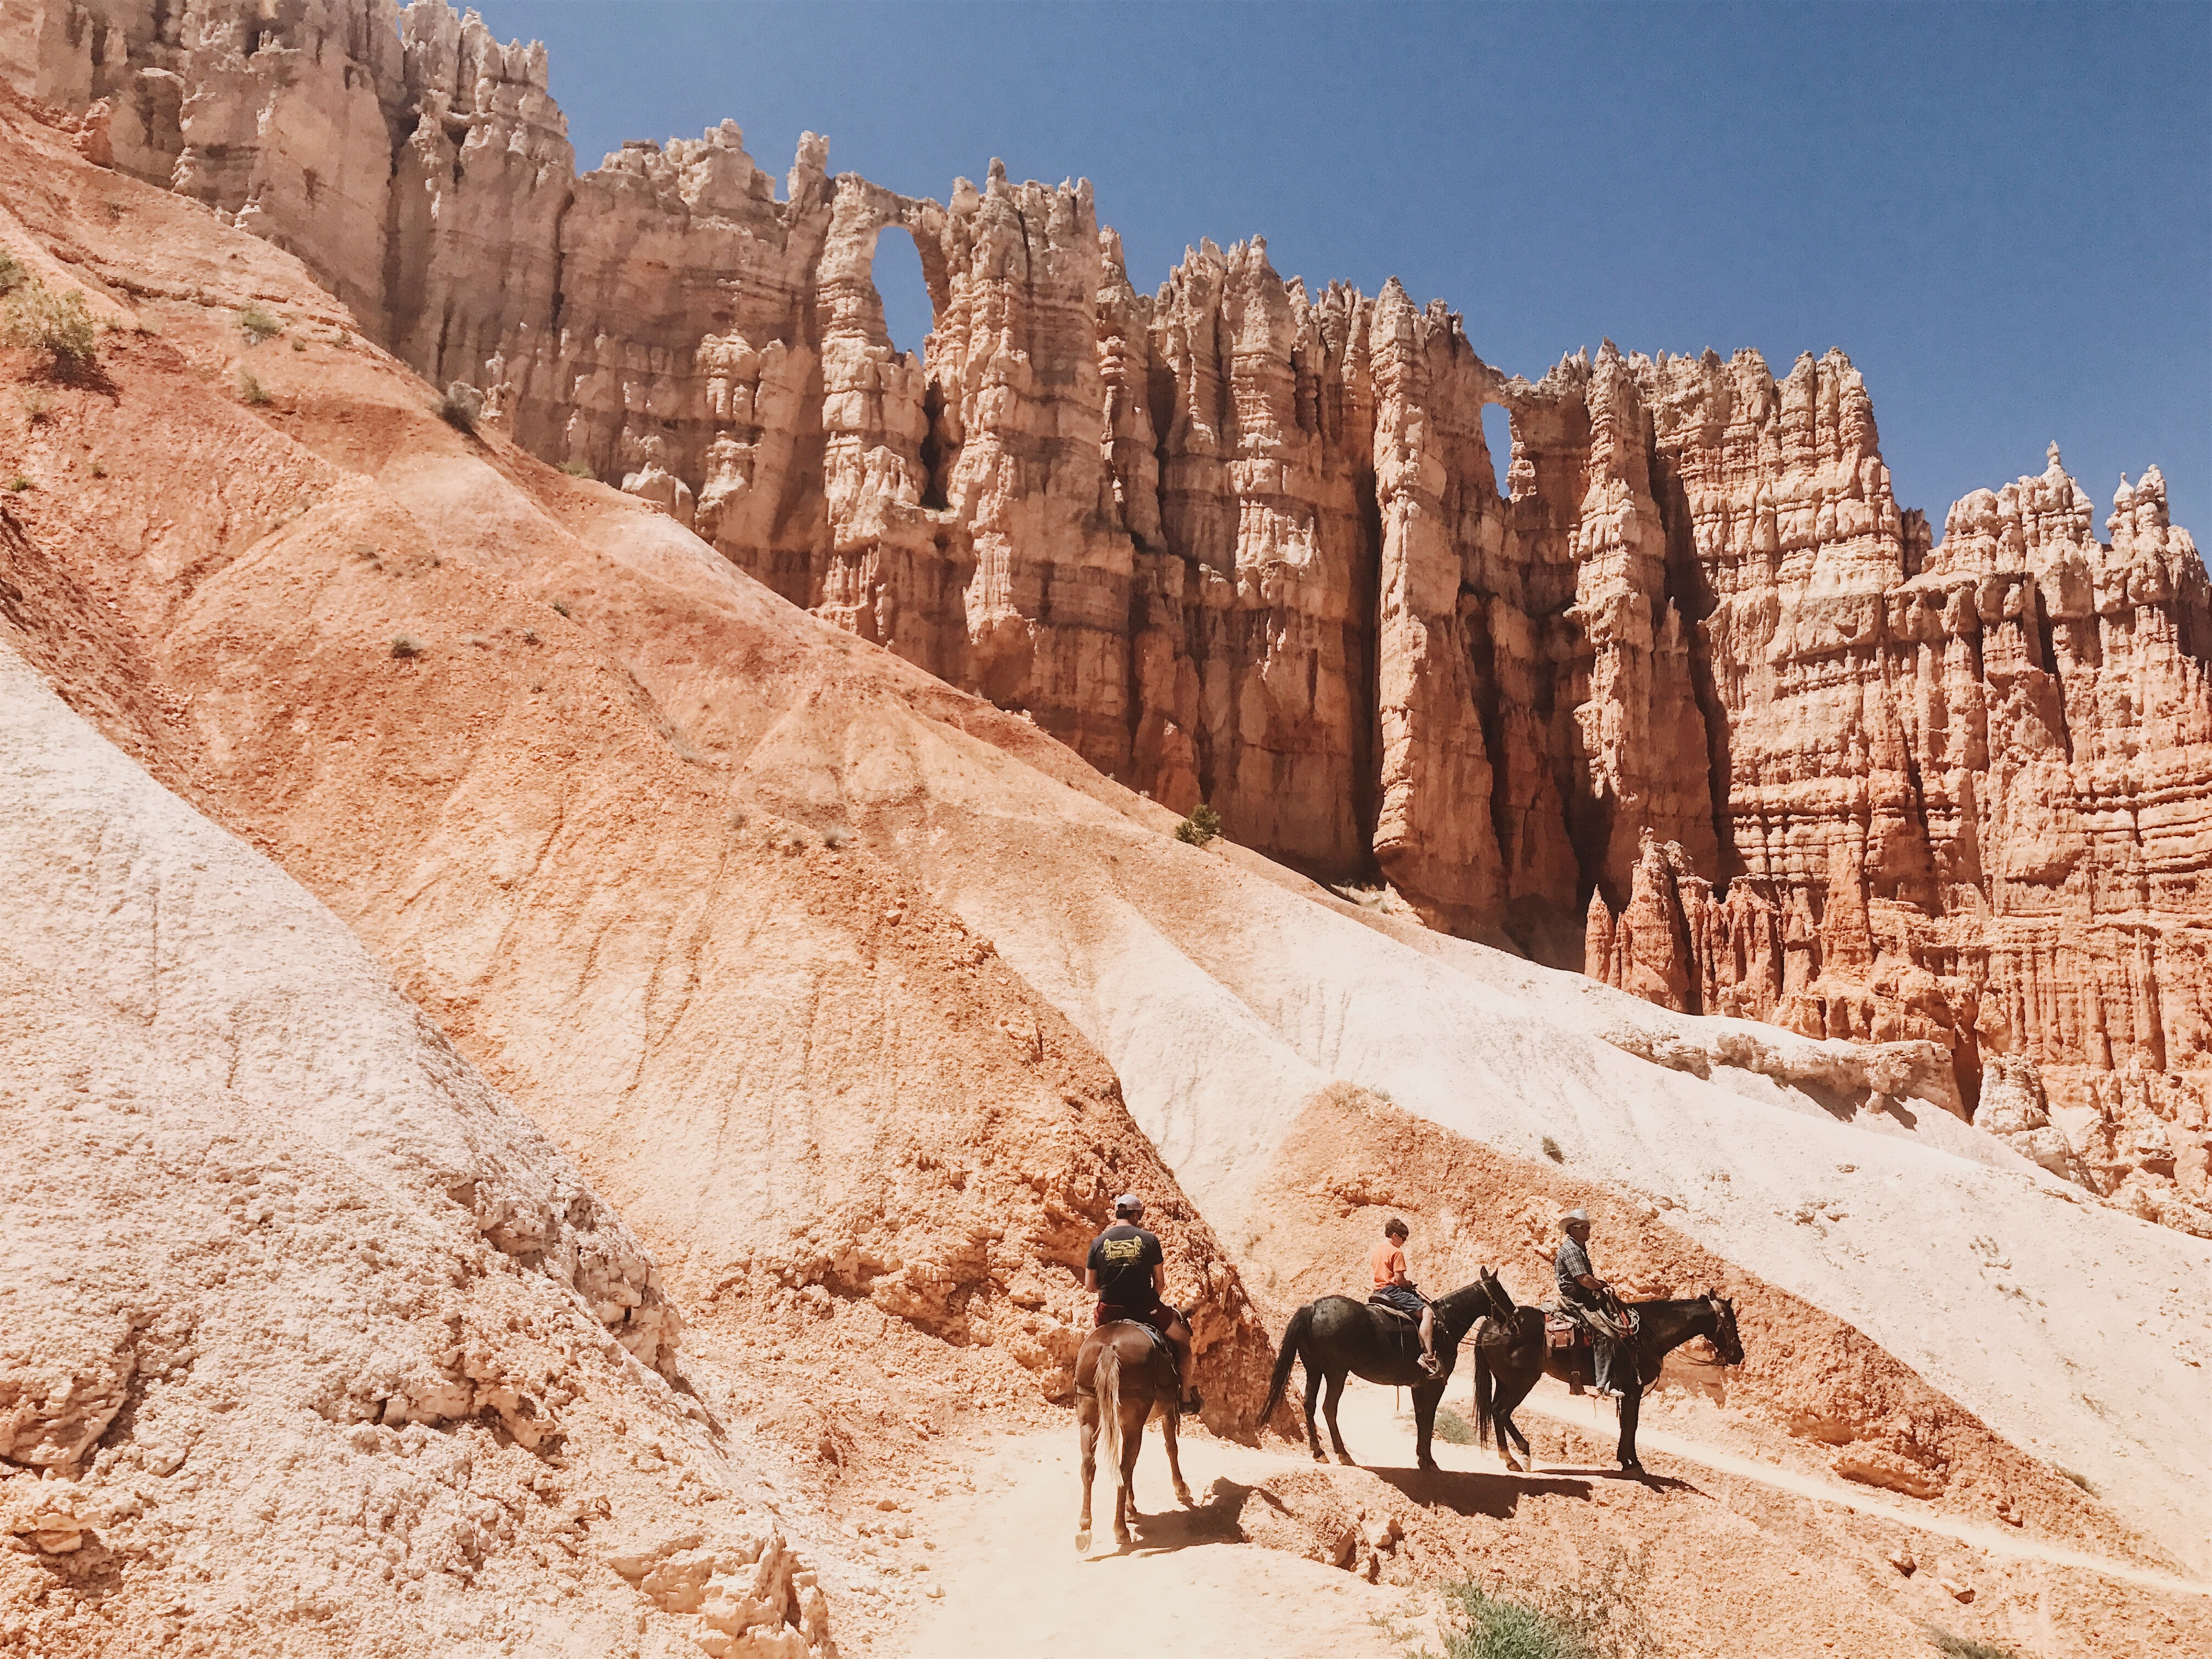 Three horse riders going down a steep slope under red sandstone outcroppings